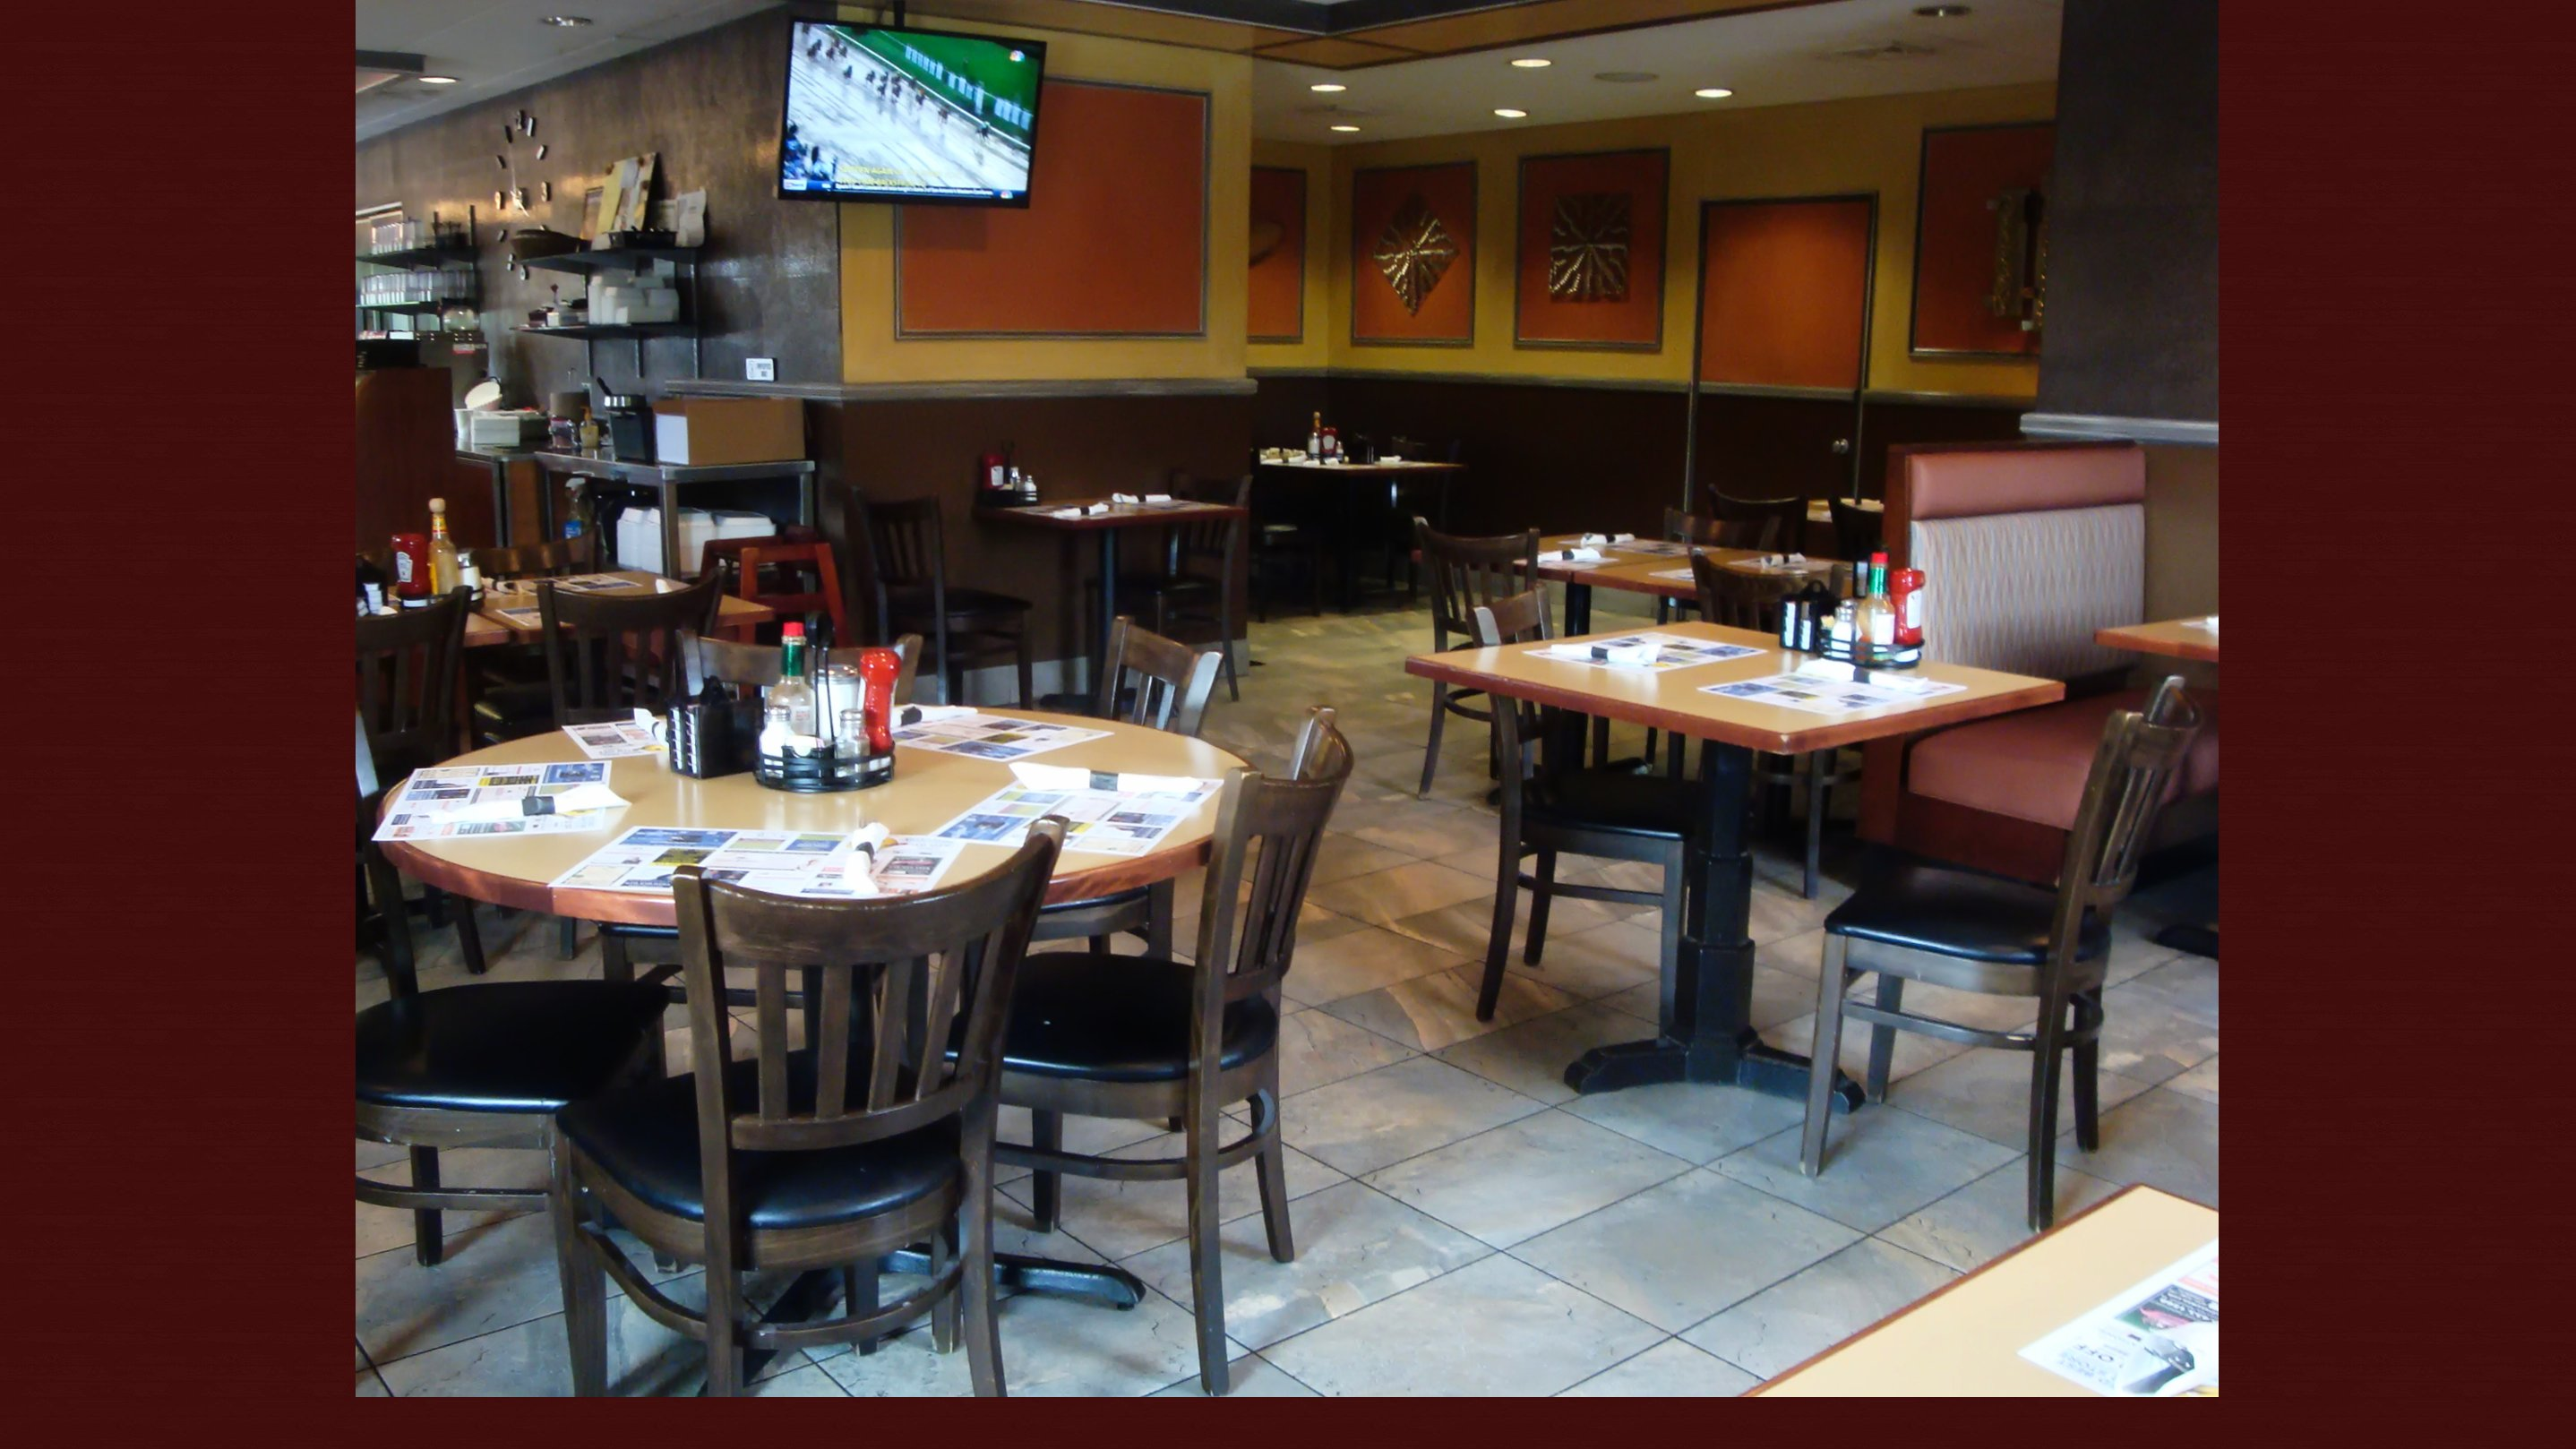 Booth section of Hanover eatery in Bethlehem PA